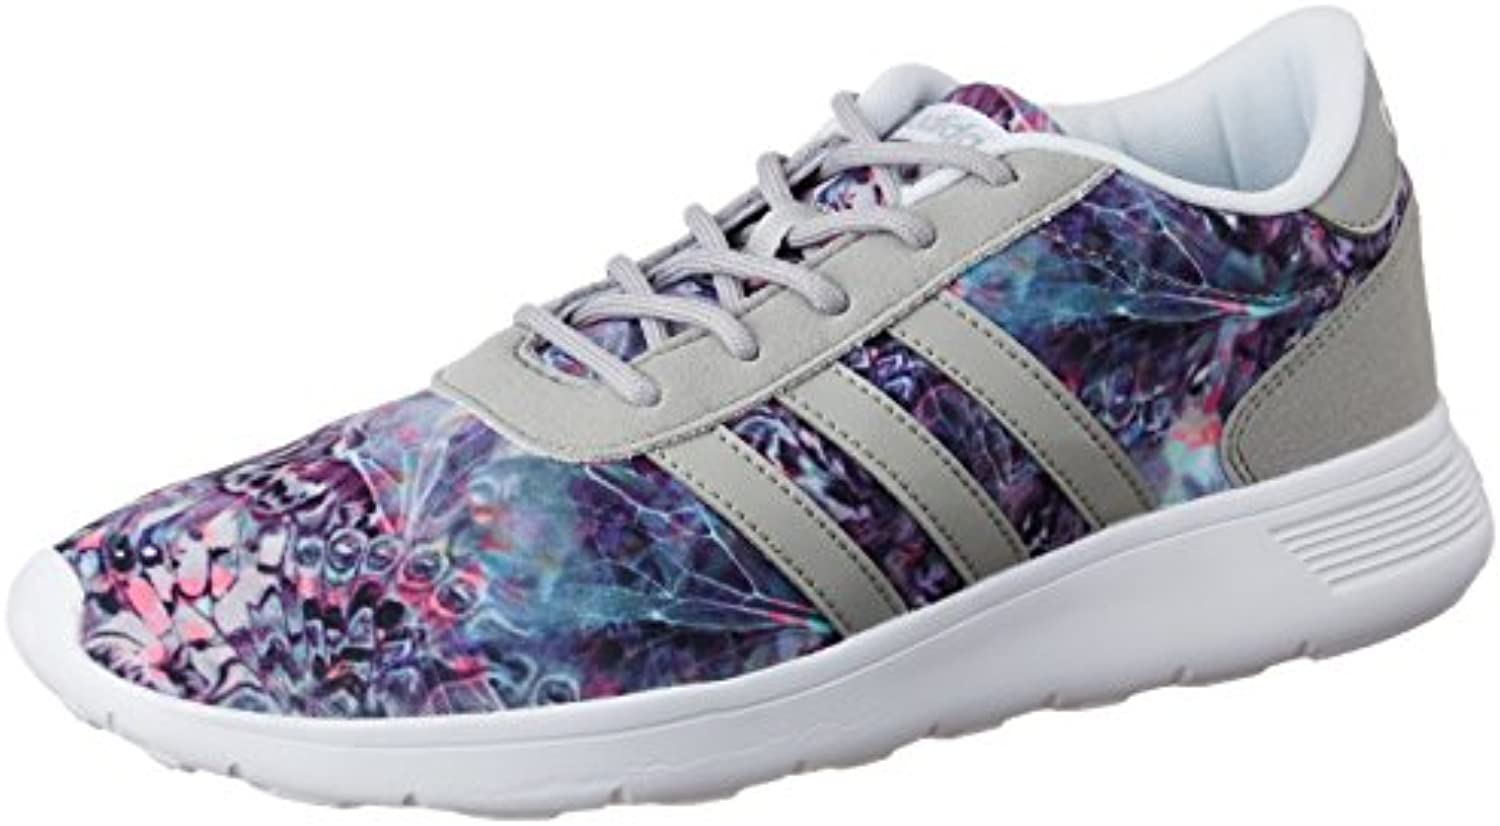 Adidas Originals EQT Equipment Support Mid ADV PK, FTWR White-FTWR White-Grey One, 10